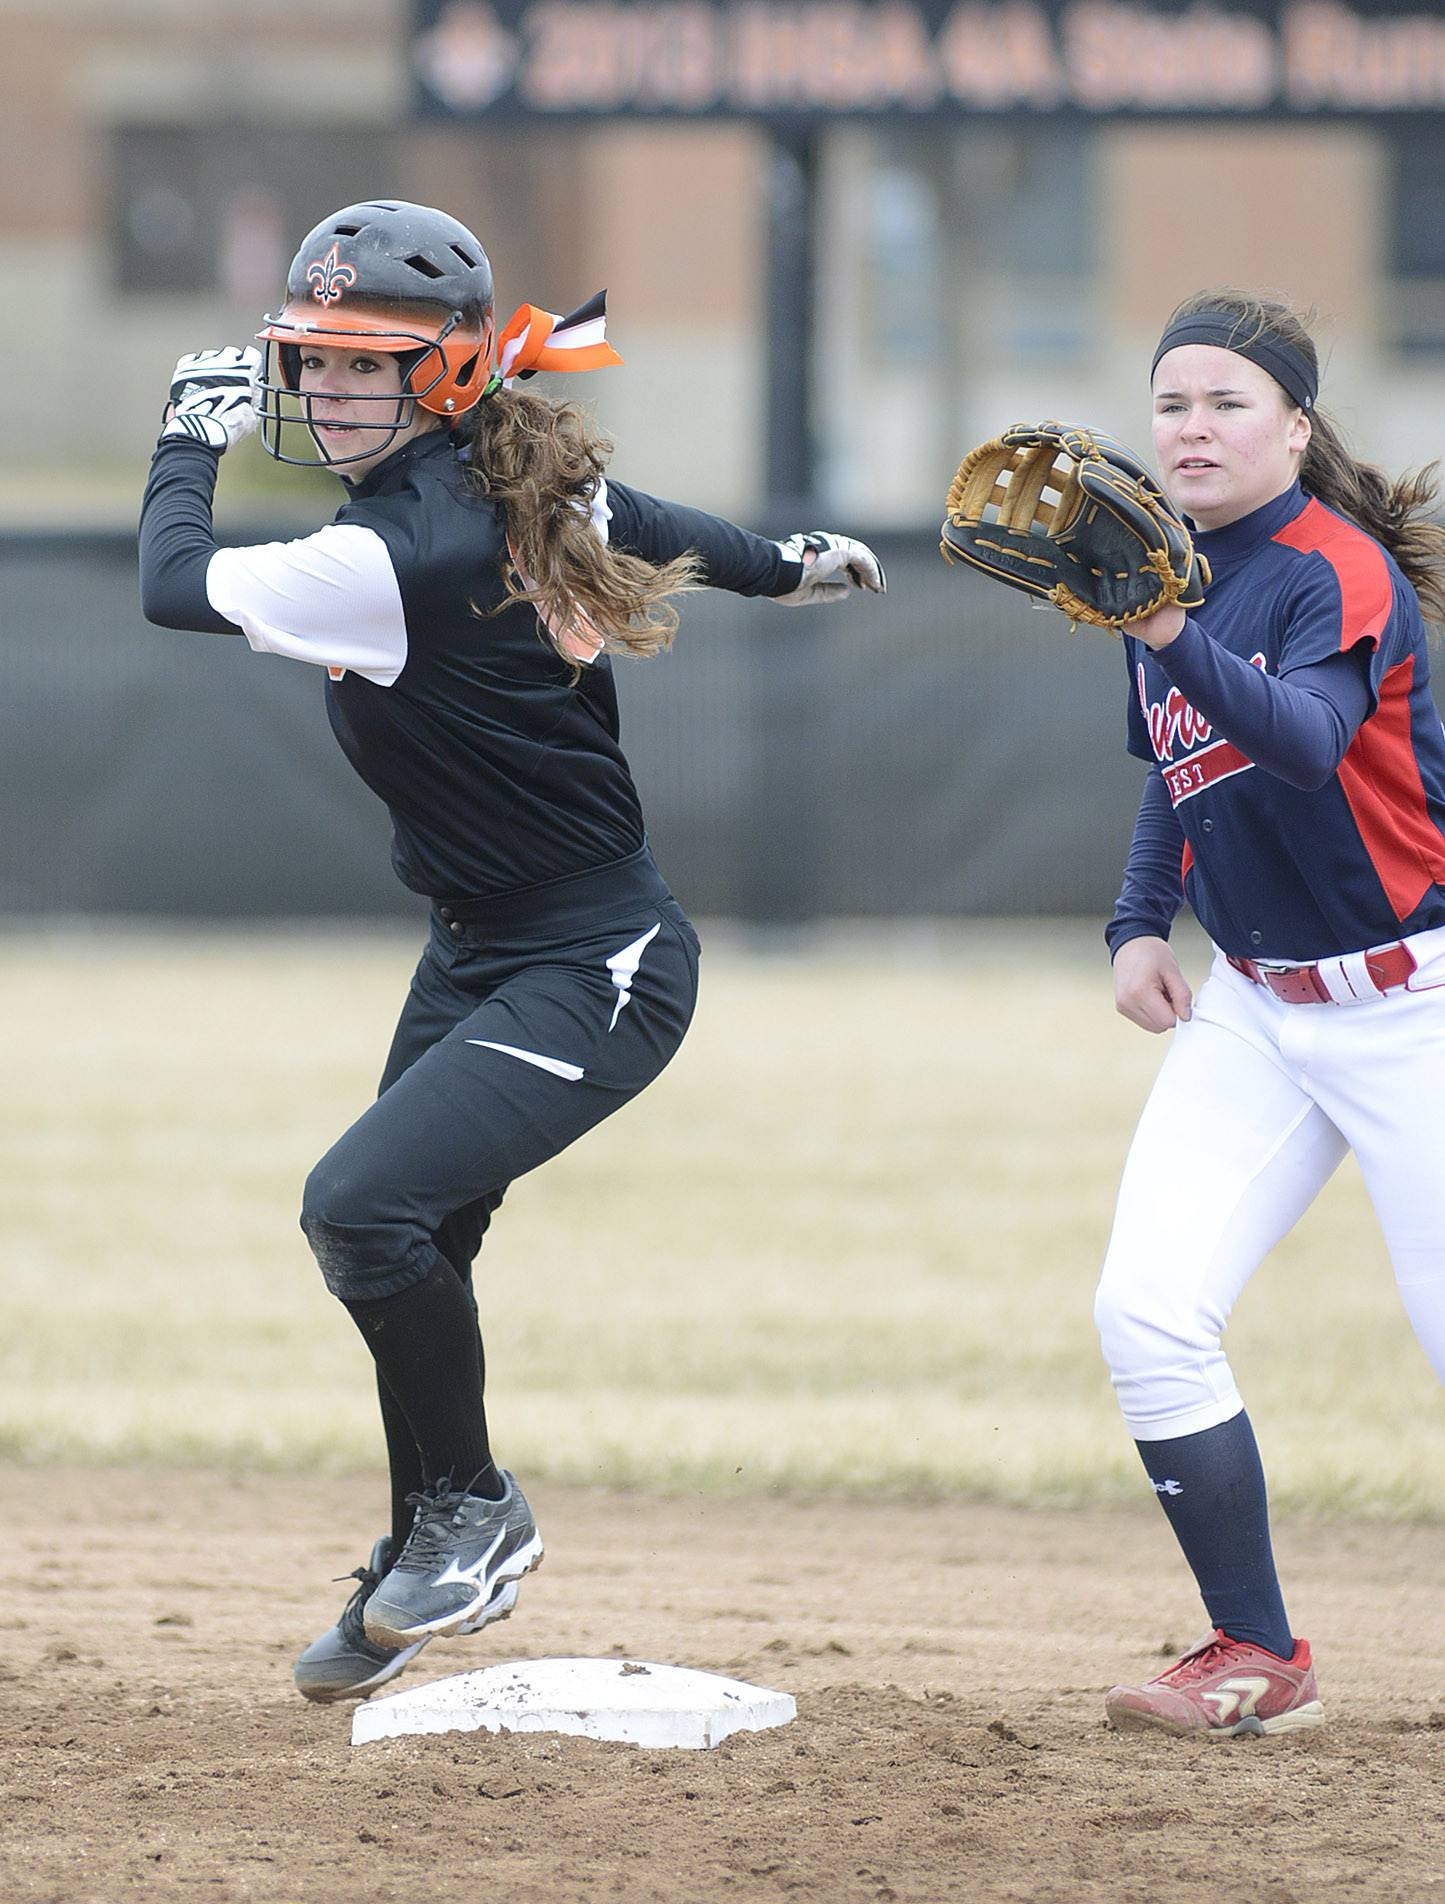 St. Charles East's Olivia Cheatham leaps safety onto second base before West Aurora's Taylor Podschweit can get the ball in her mitt in the fifth inning on Friday, April 4. Cheatham would score a run for the Saints within a few minutes.